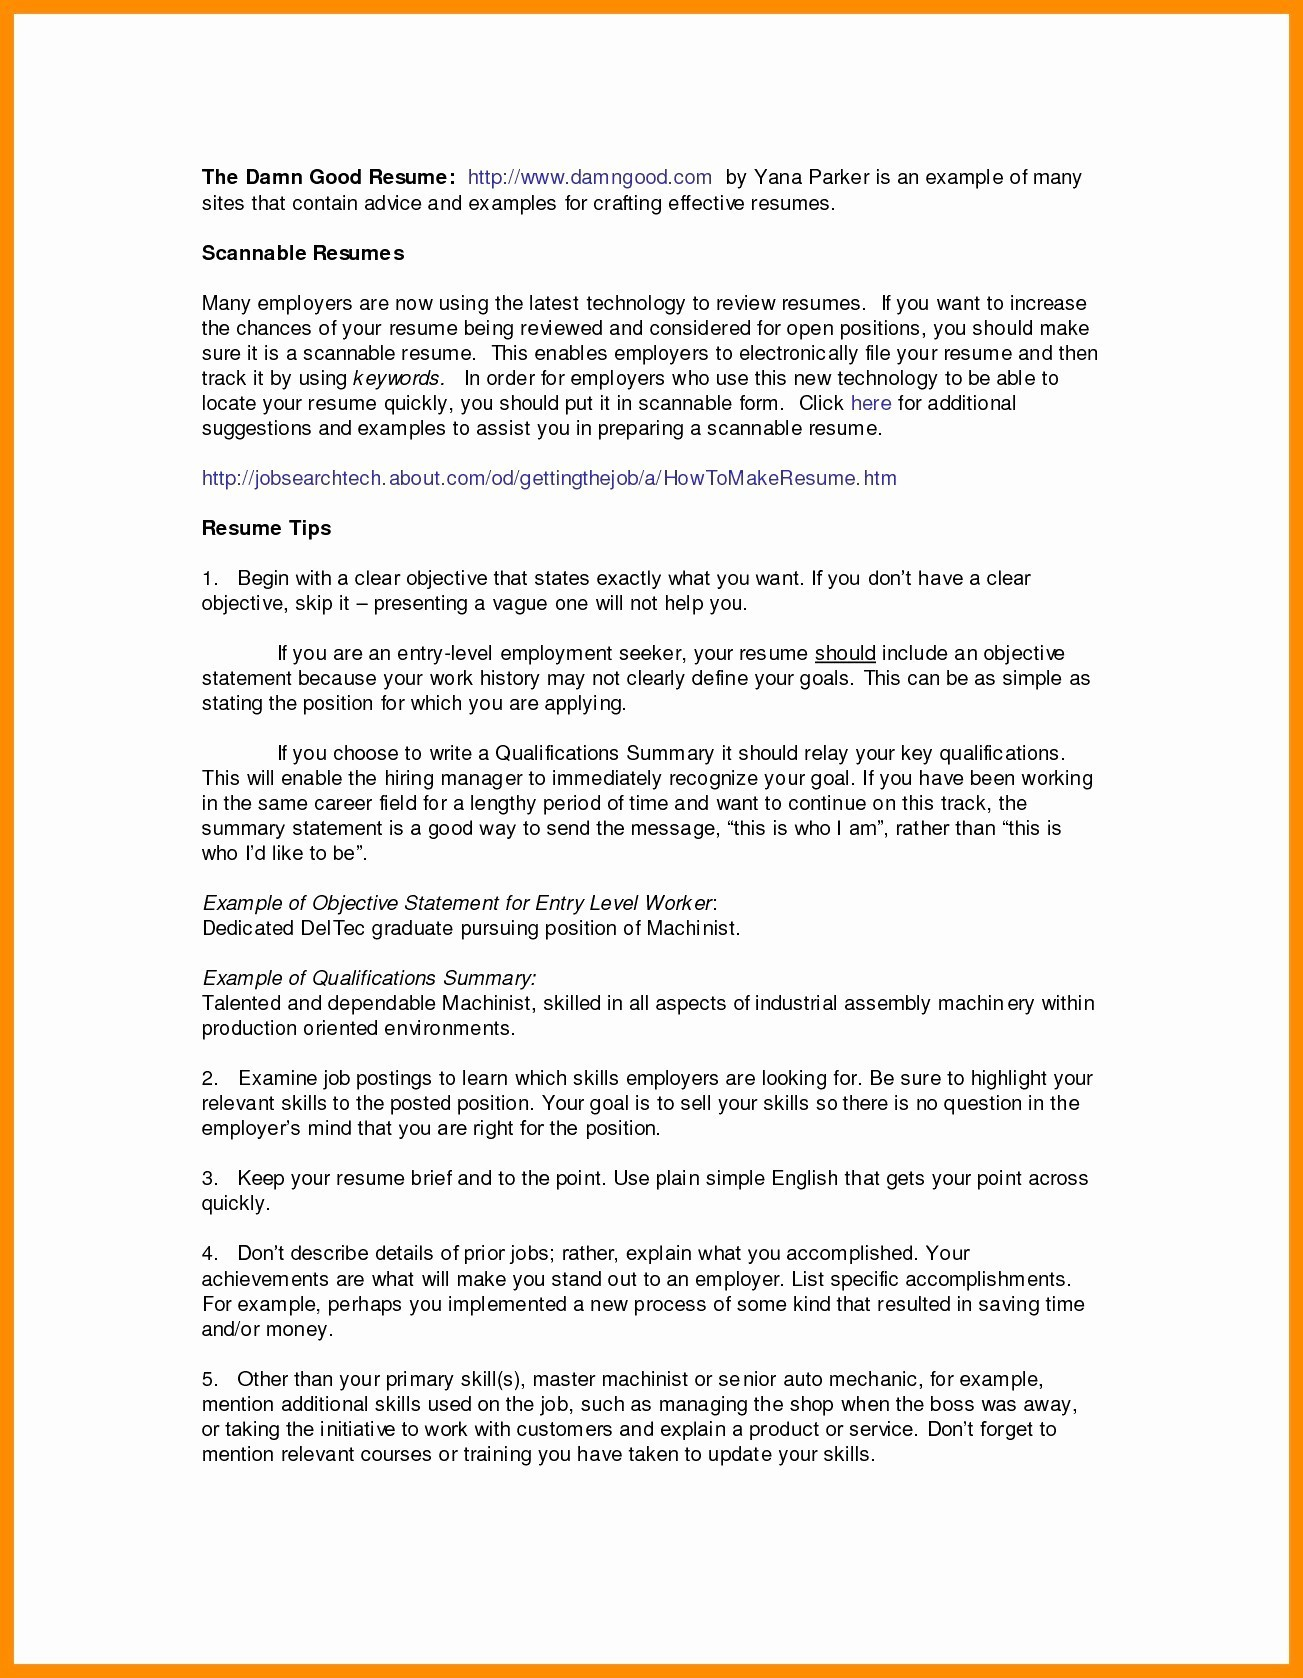 oil field resume template Collection-Oil and Gas Resume Template 21 Oil and Gas Resume Template 15-i